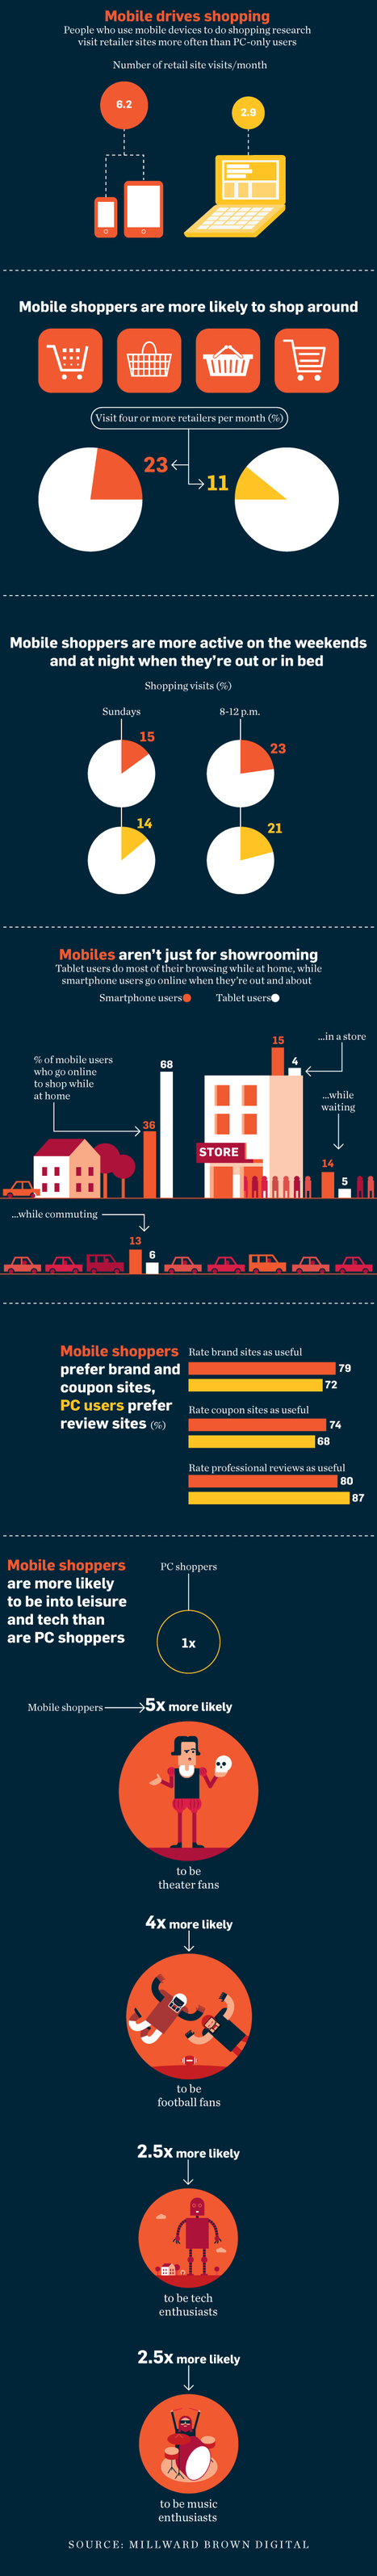 People Shopping on Mobile Devices Visit More Sites Than Those on a PC | Social Media e Innovación Tecnológica | Scoop.it